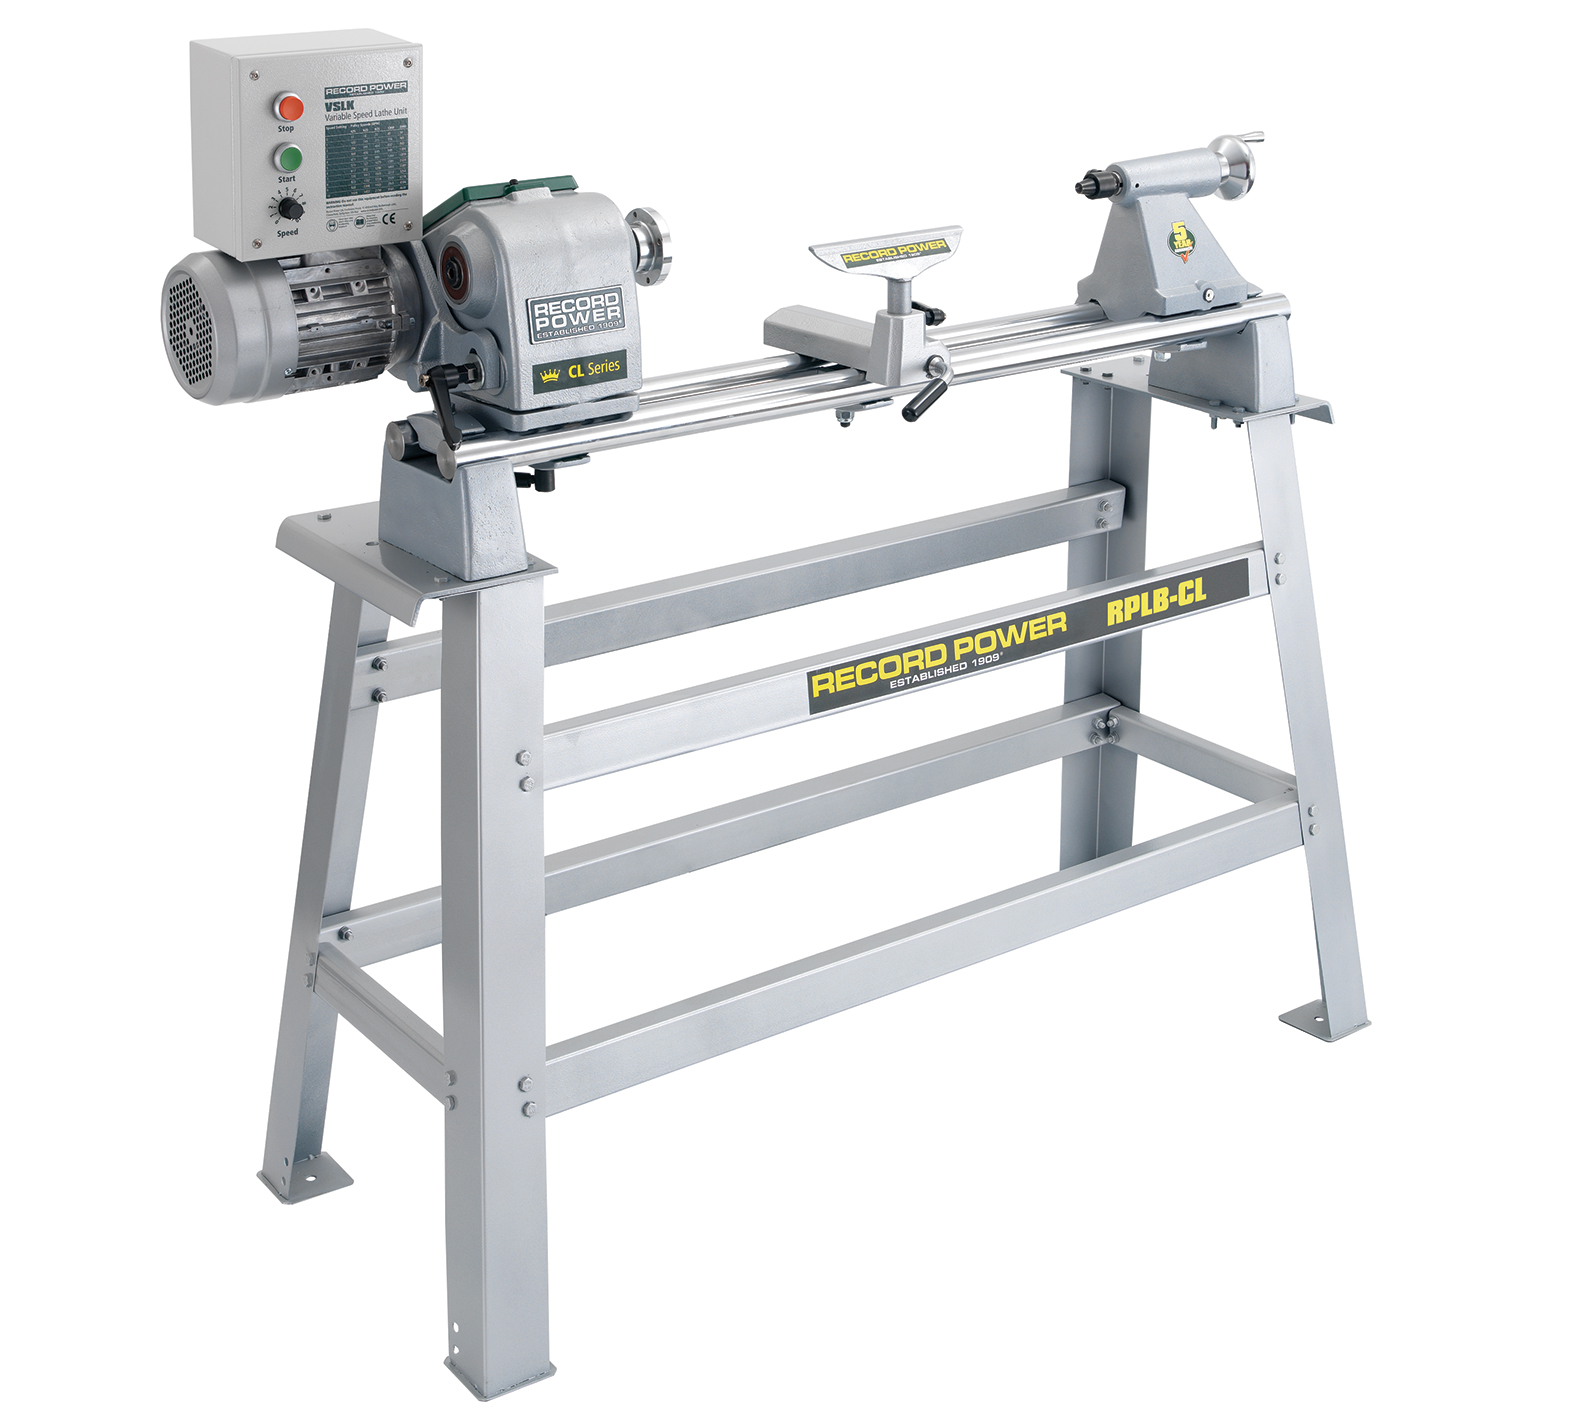 12203 Professional Electronic Variable Speed Lathe and Stand Package